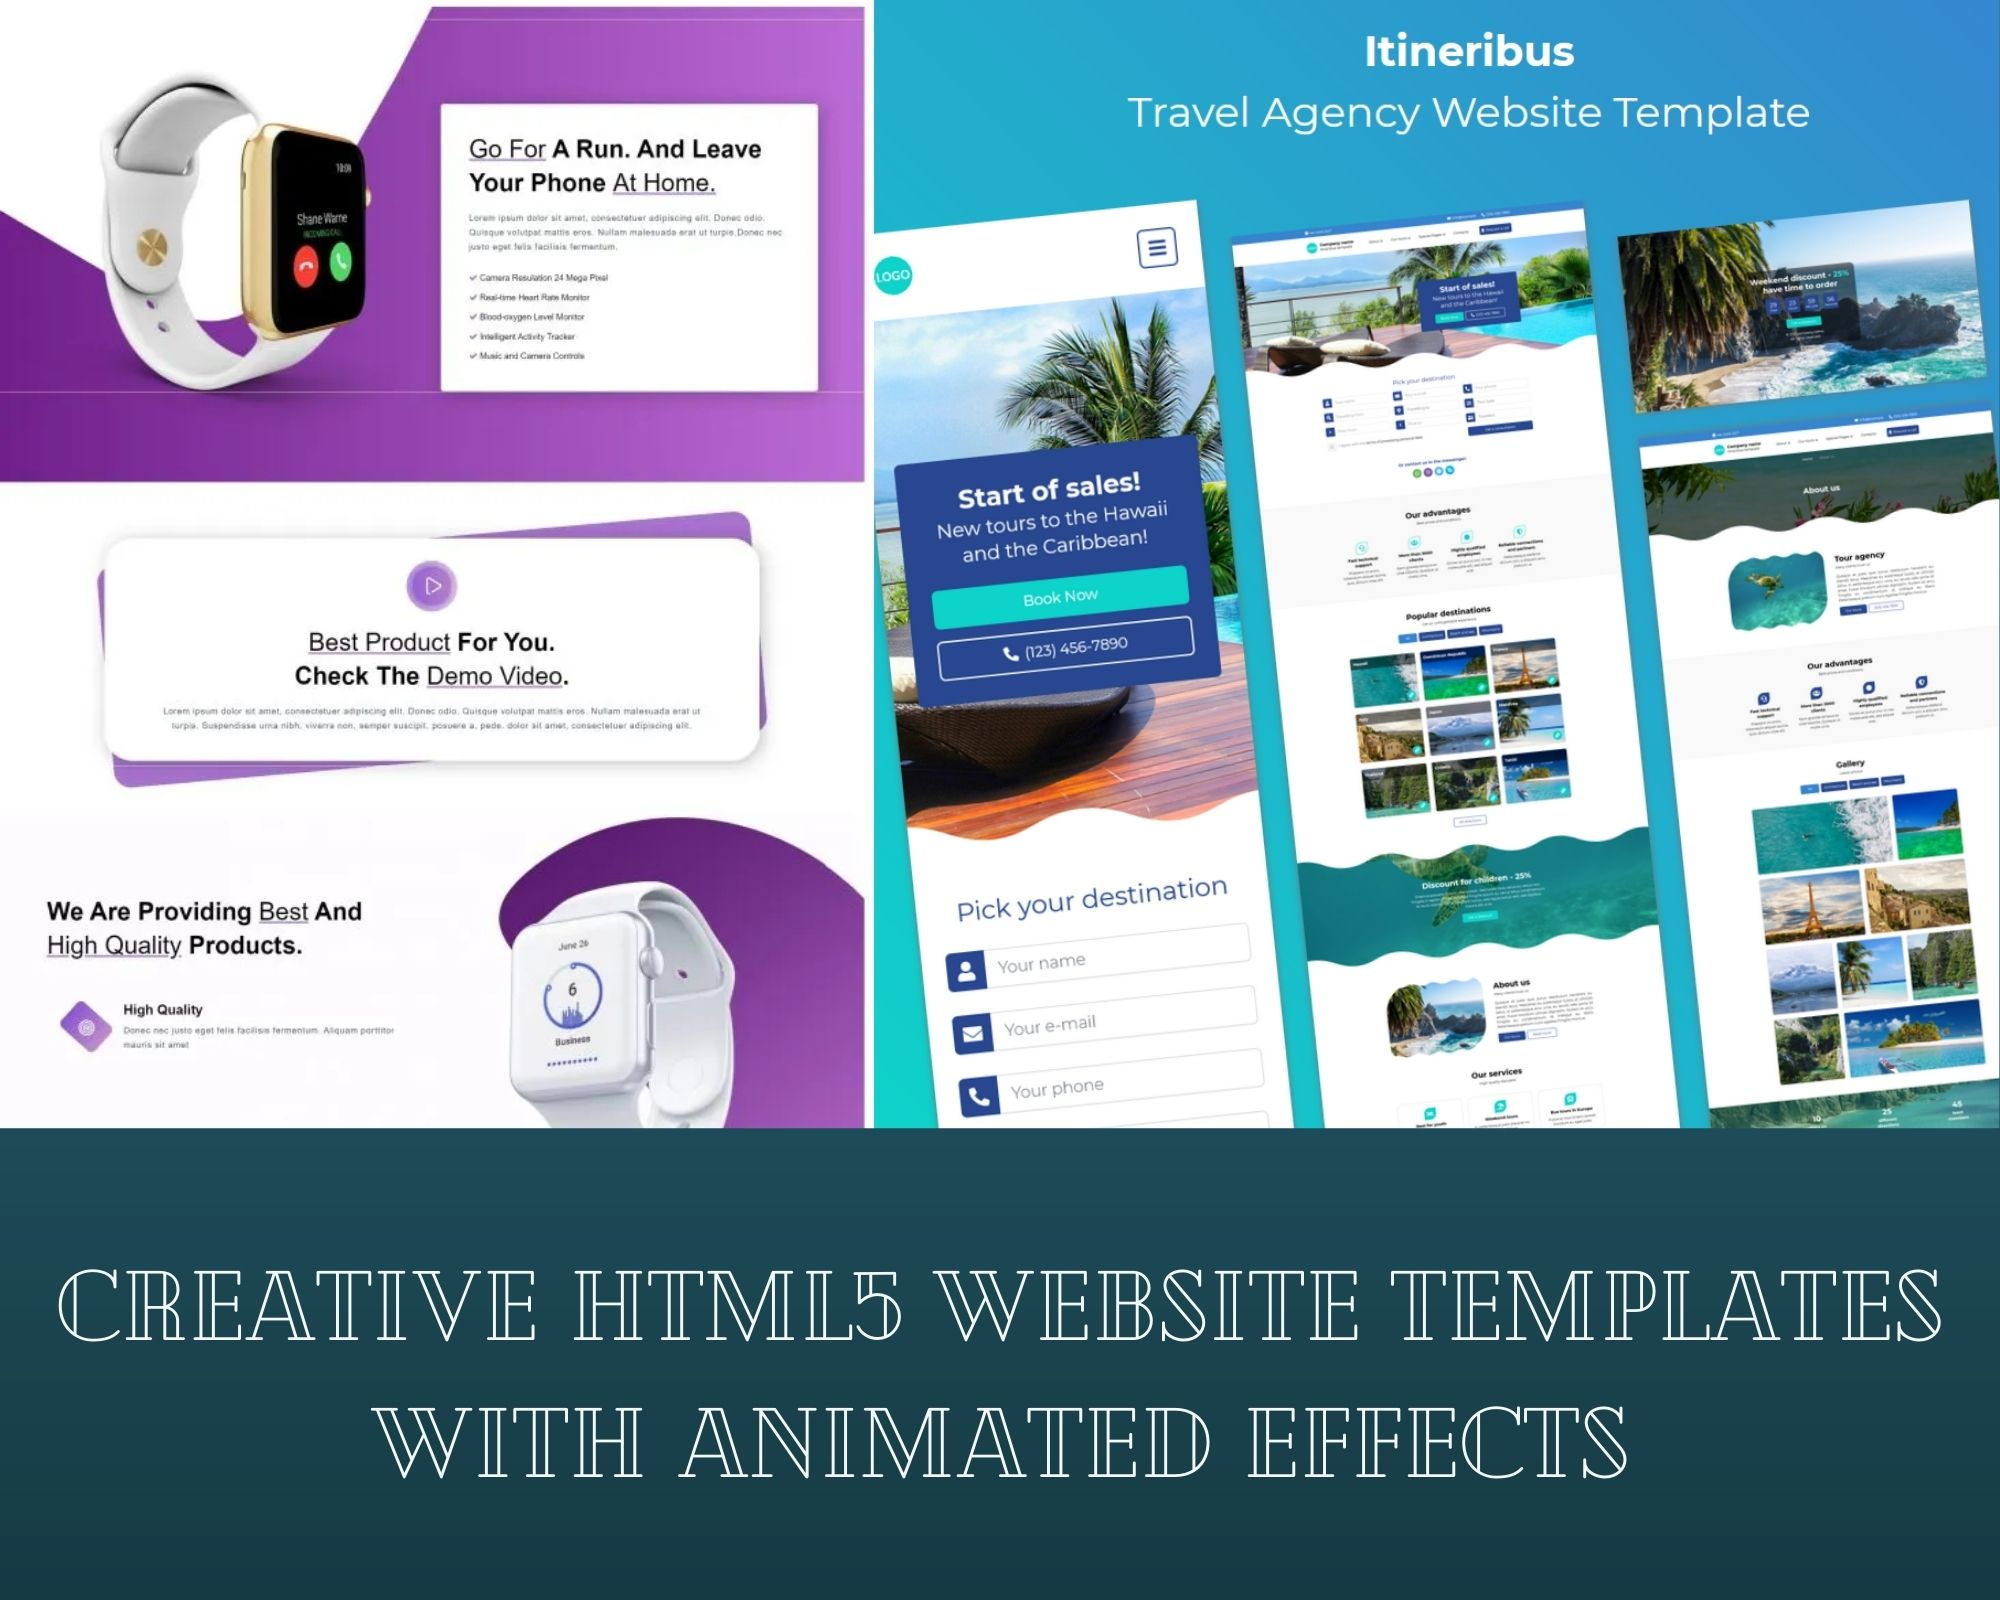 Creative HTML5 Website Templates With Animated Effects